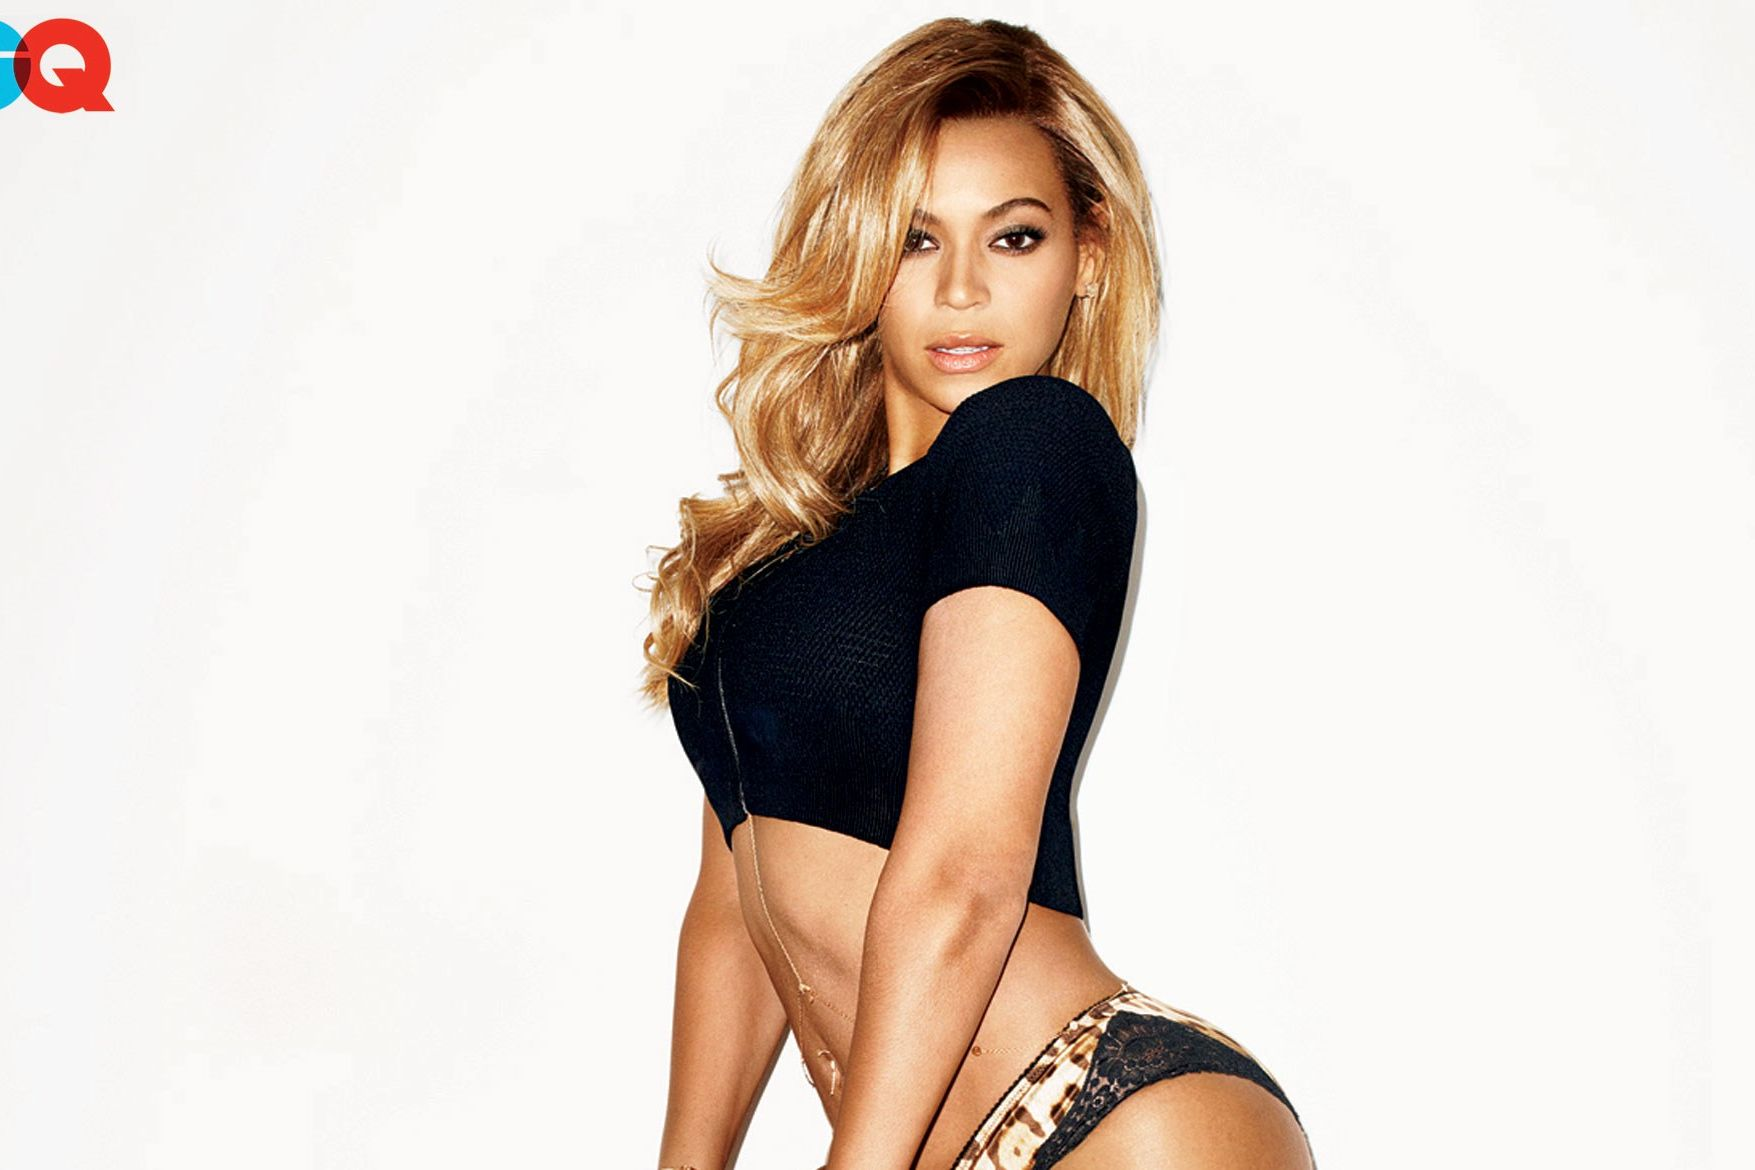 Beyonce gq cover those on!